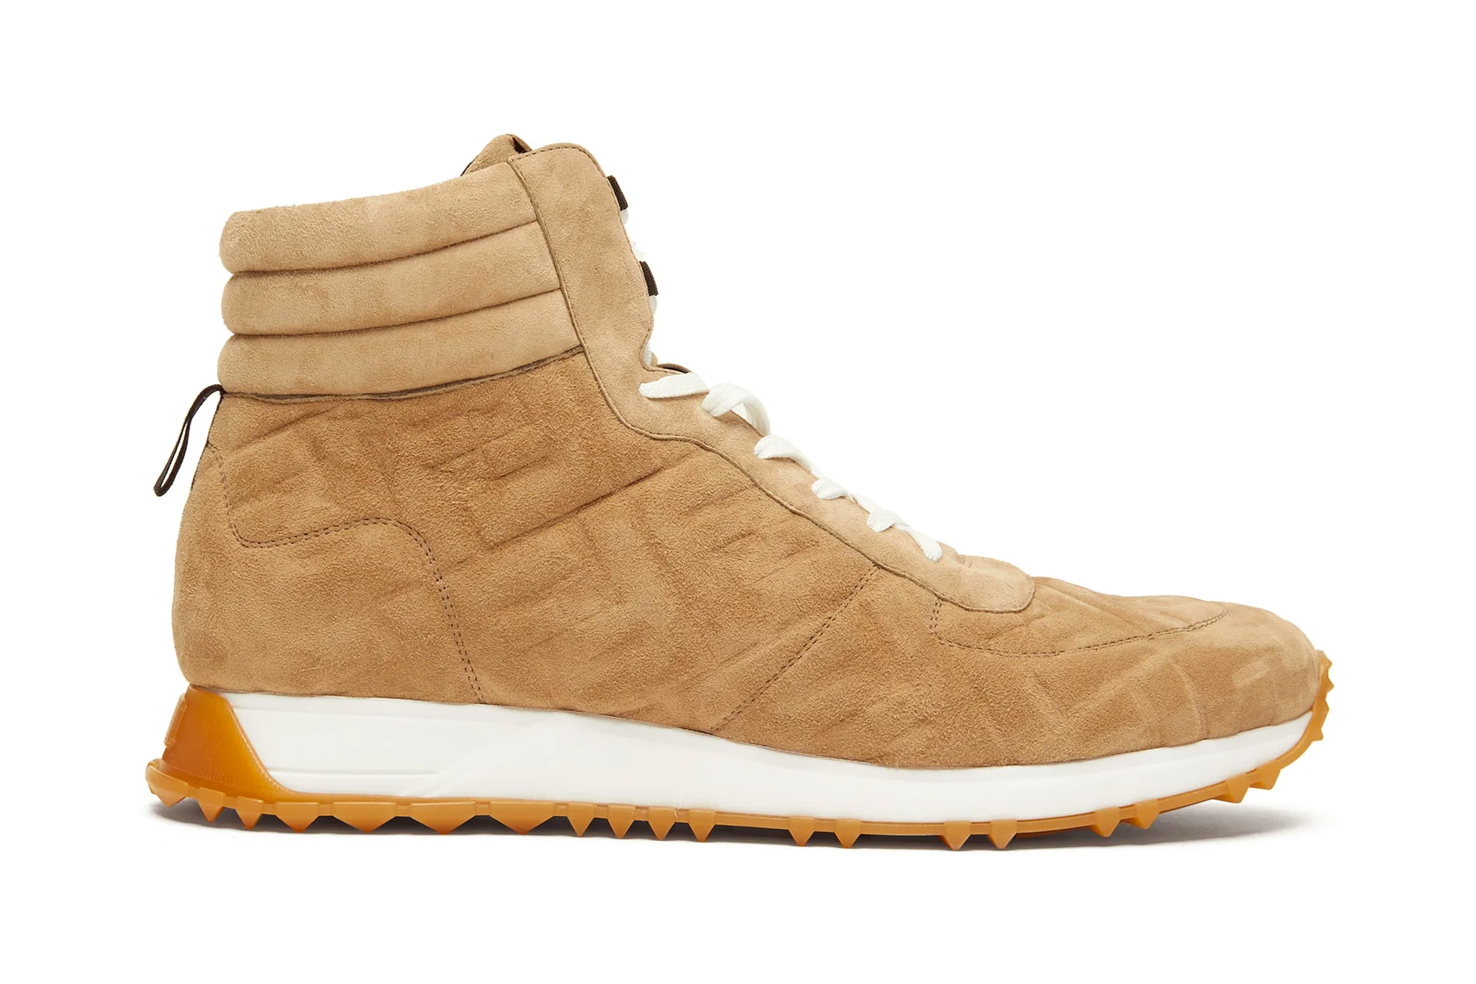 Fendi FF-Embossed High-Top Suede Trainers Release shoes military trainer shoes footwear kicks sneakers suede